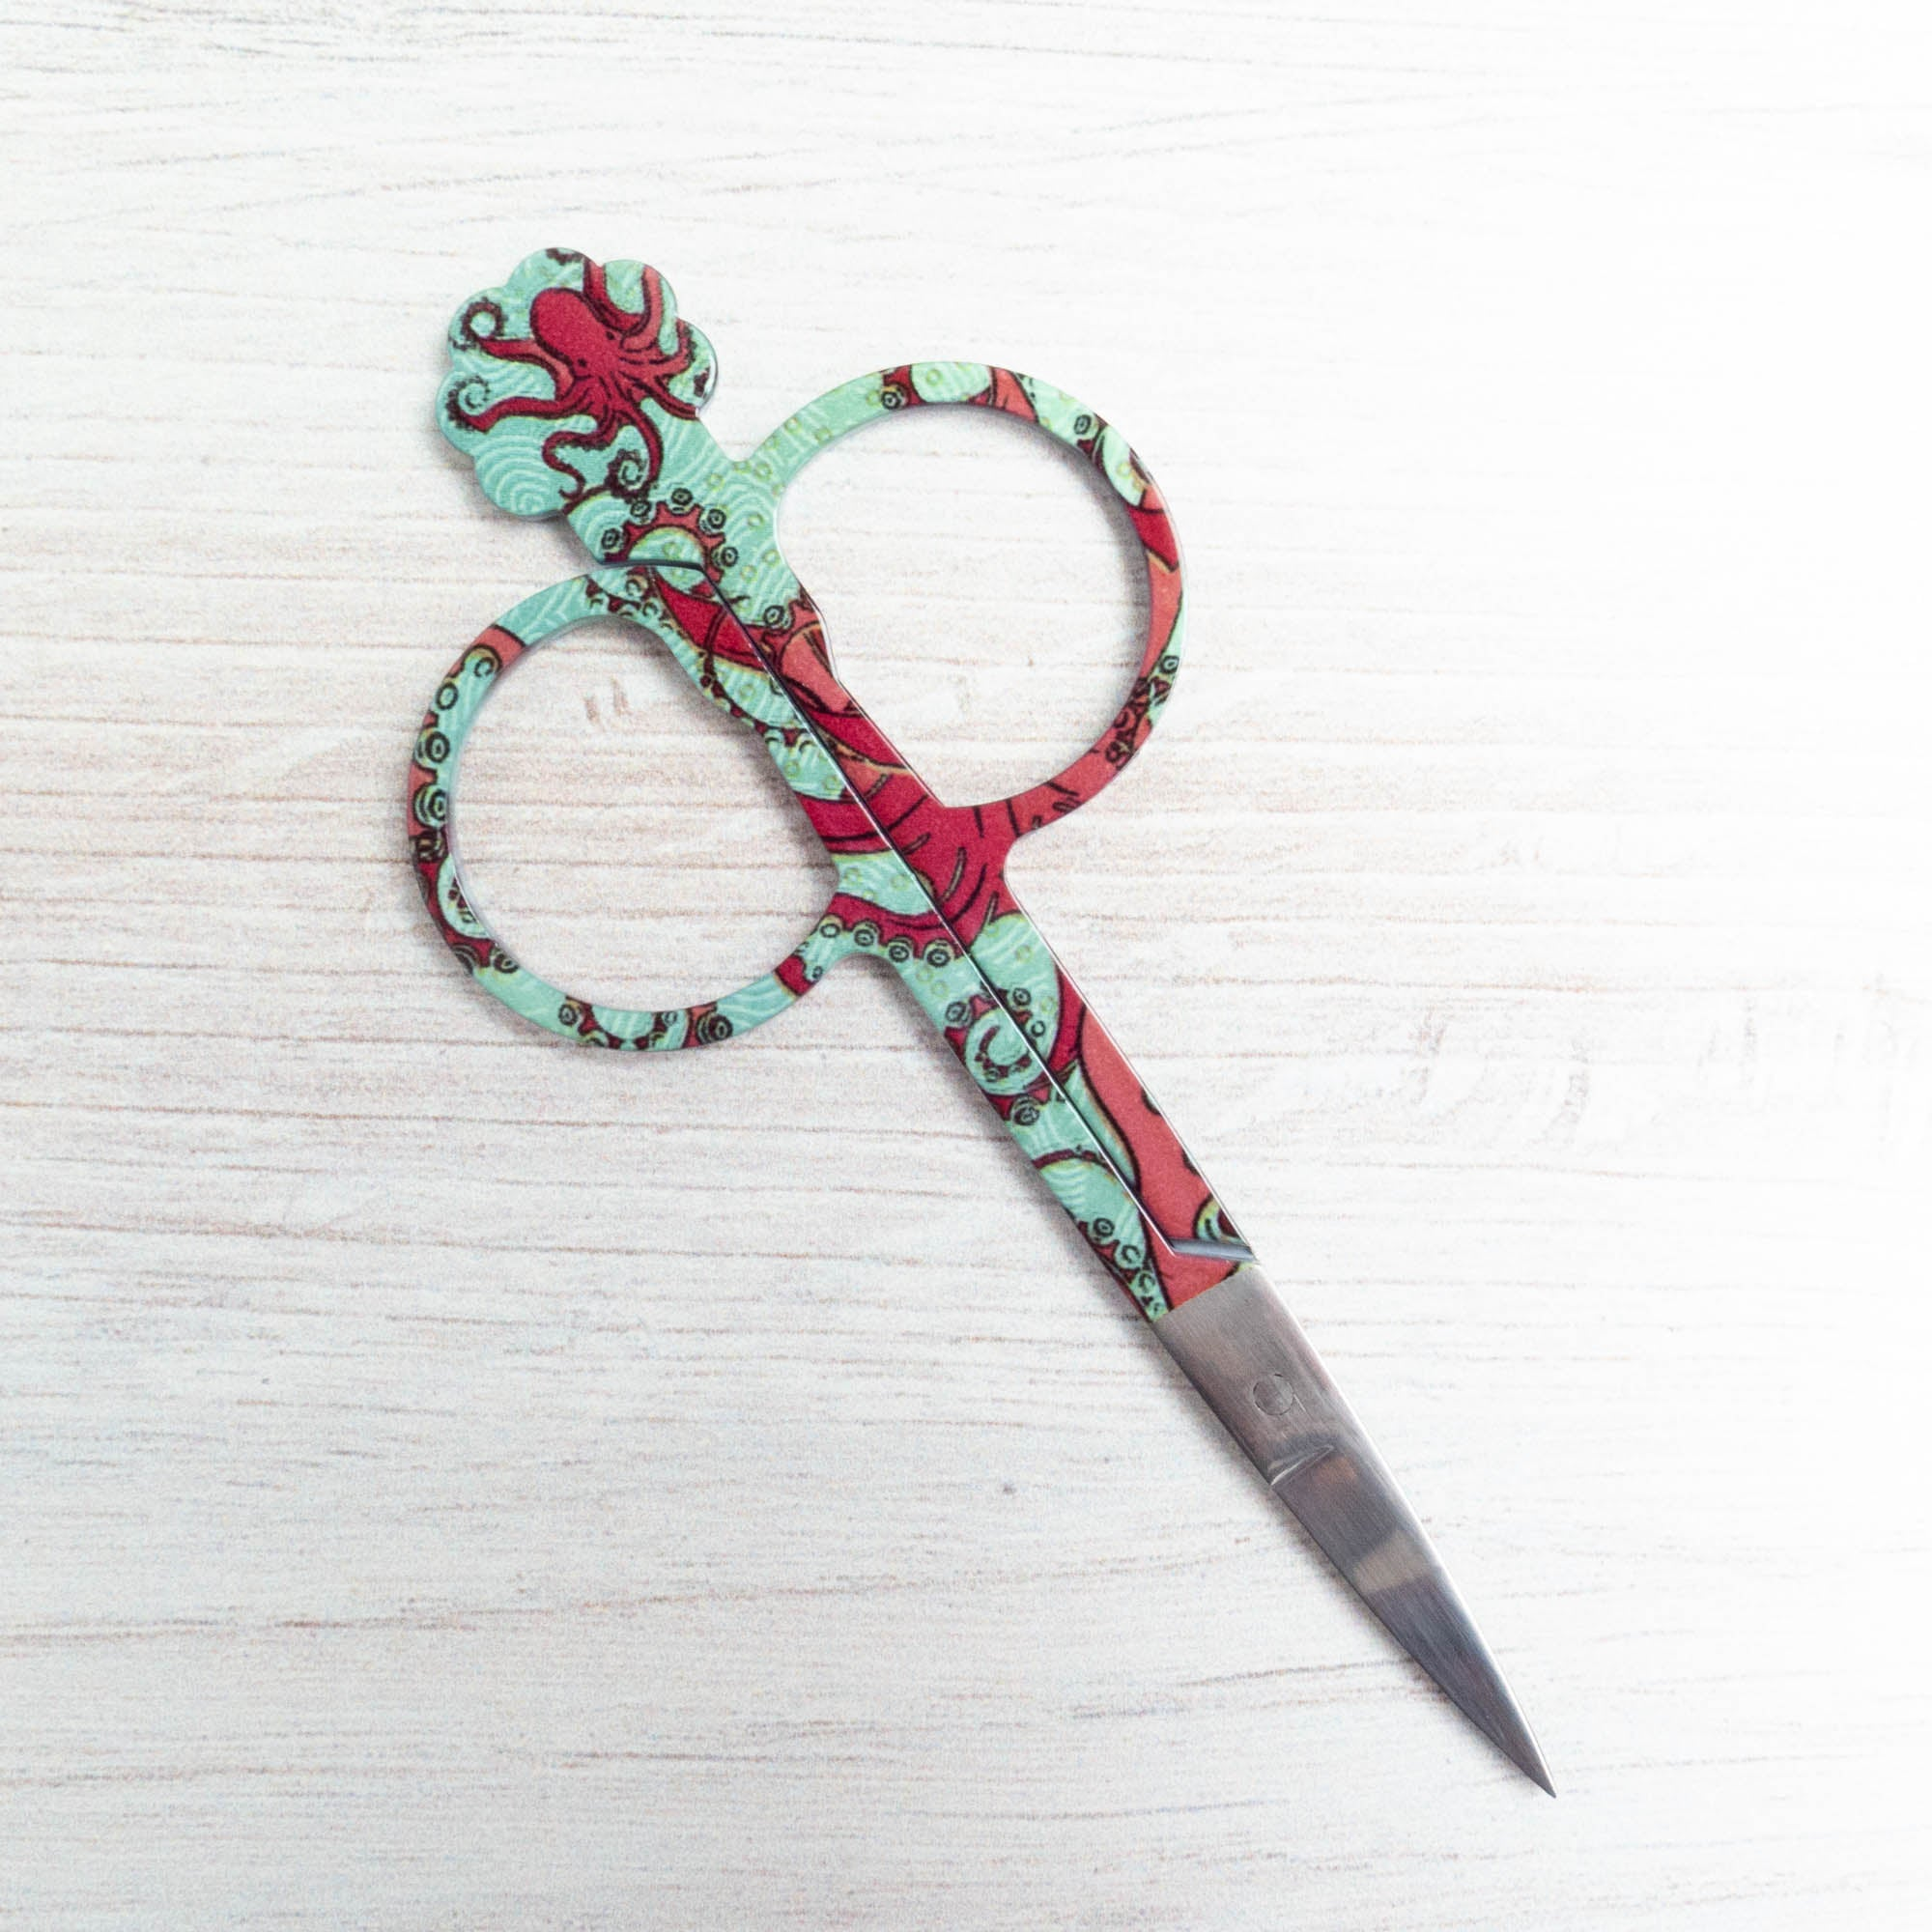 Bohin Embroidery Scissors - Octopus Scissors - Snuggly Monkey